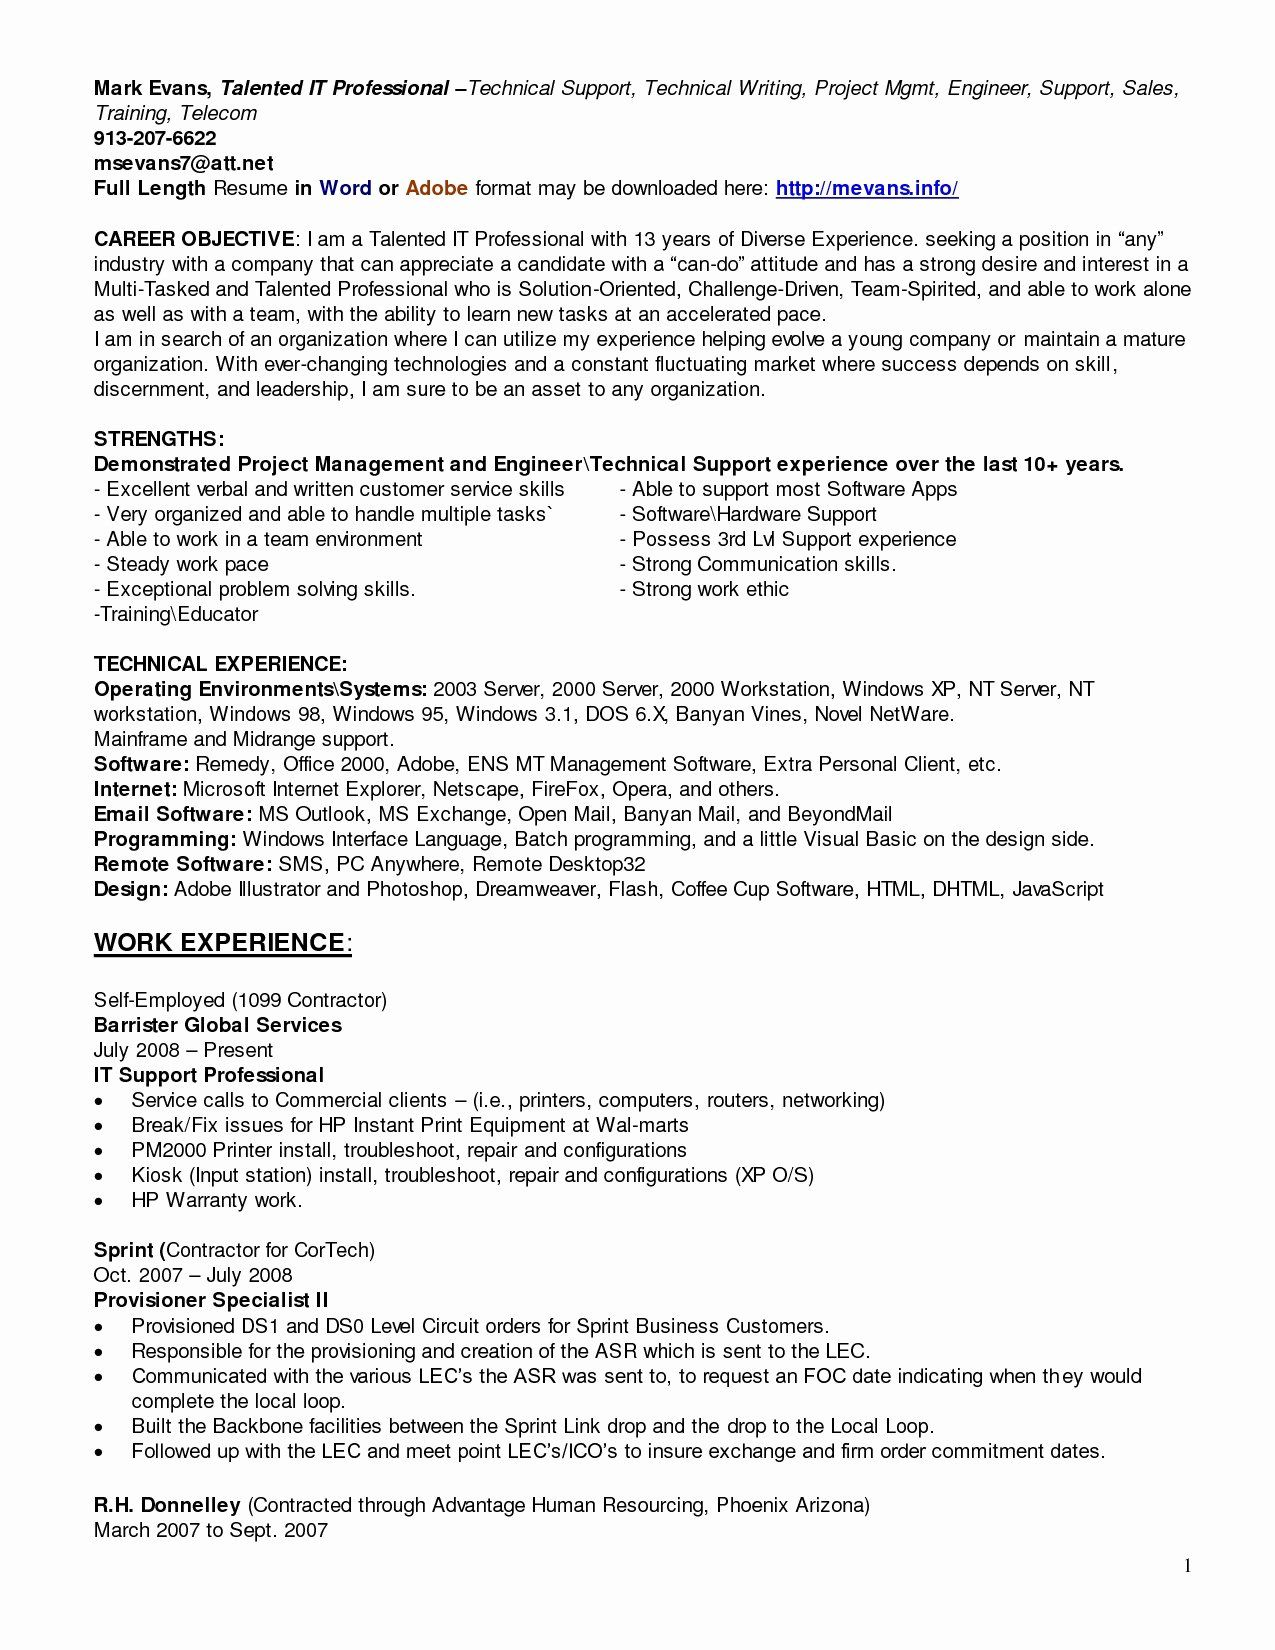 25 technical writer resume sample in 2020 with images